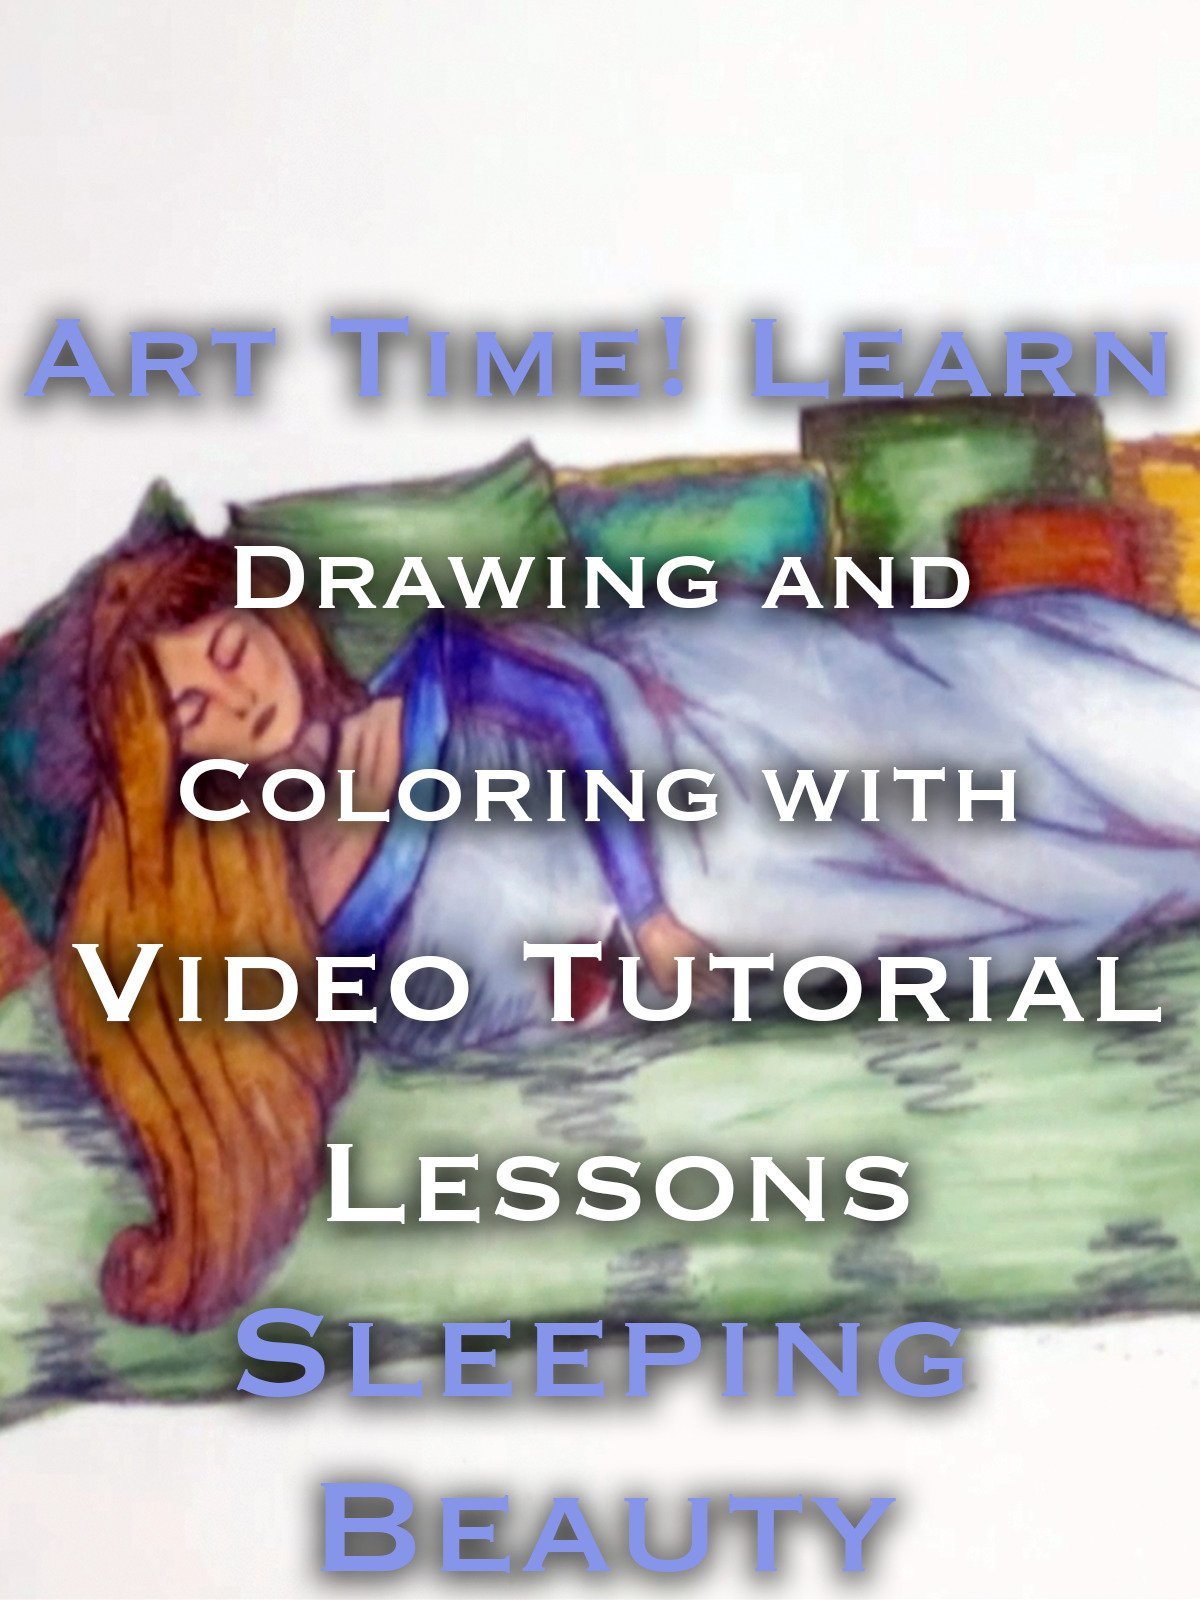 Art Time! Learn Drawing and Coloring with Video Tutorial Lessons Sleeping Beauty